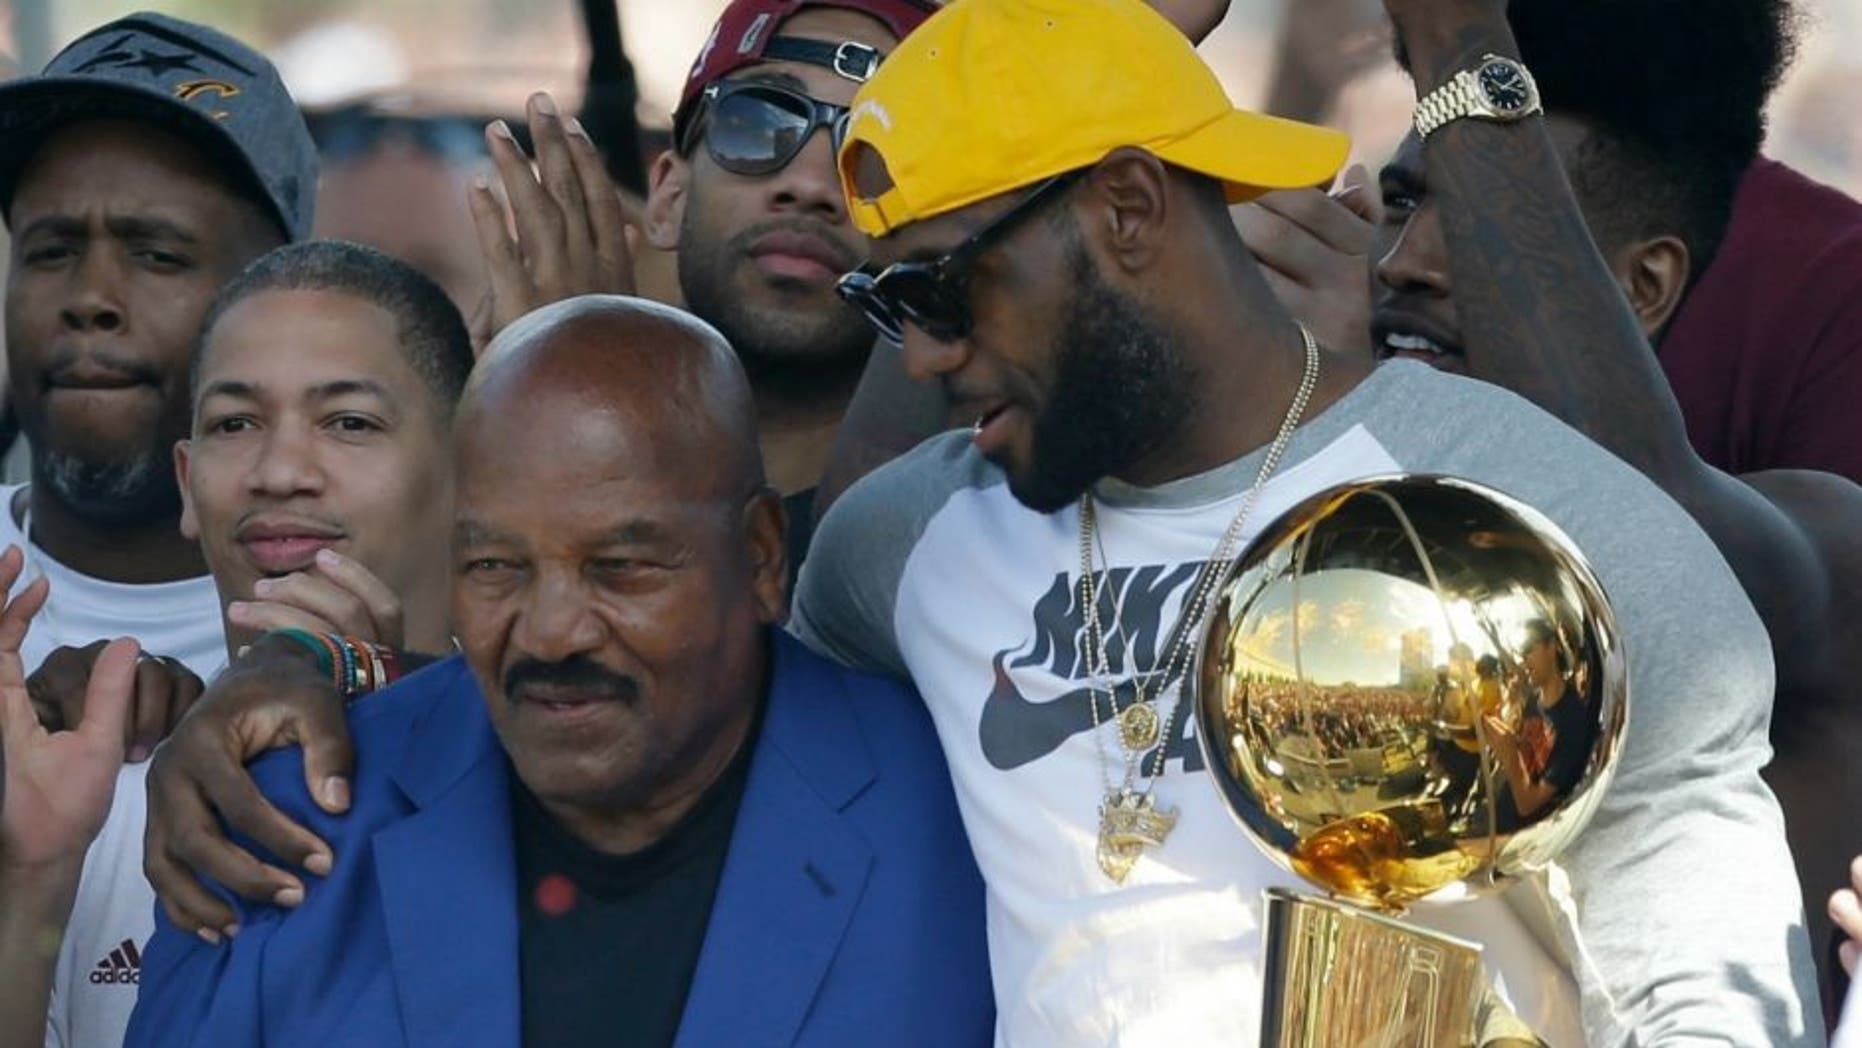 Former Cleveland Brown' Jim Brown, left, passes the Larry O'Brien NBA Championship Trophy to LeBron James during a rally, Wednesday, June 22, 2016, in Cleveland. The Cavaliers made history by overcoming a 3-1 deficit to beat the Golden State Warriors in the NBA Finals and end the city's 52-year drought without a professional sports championship. (AP Photo/Tony Dejak)